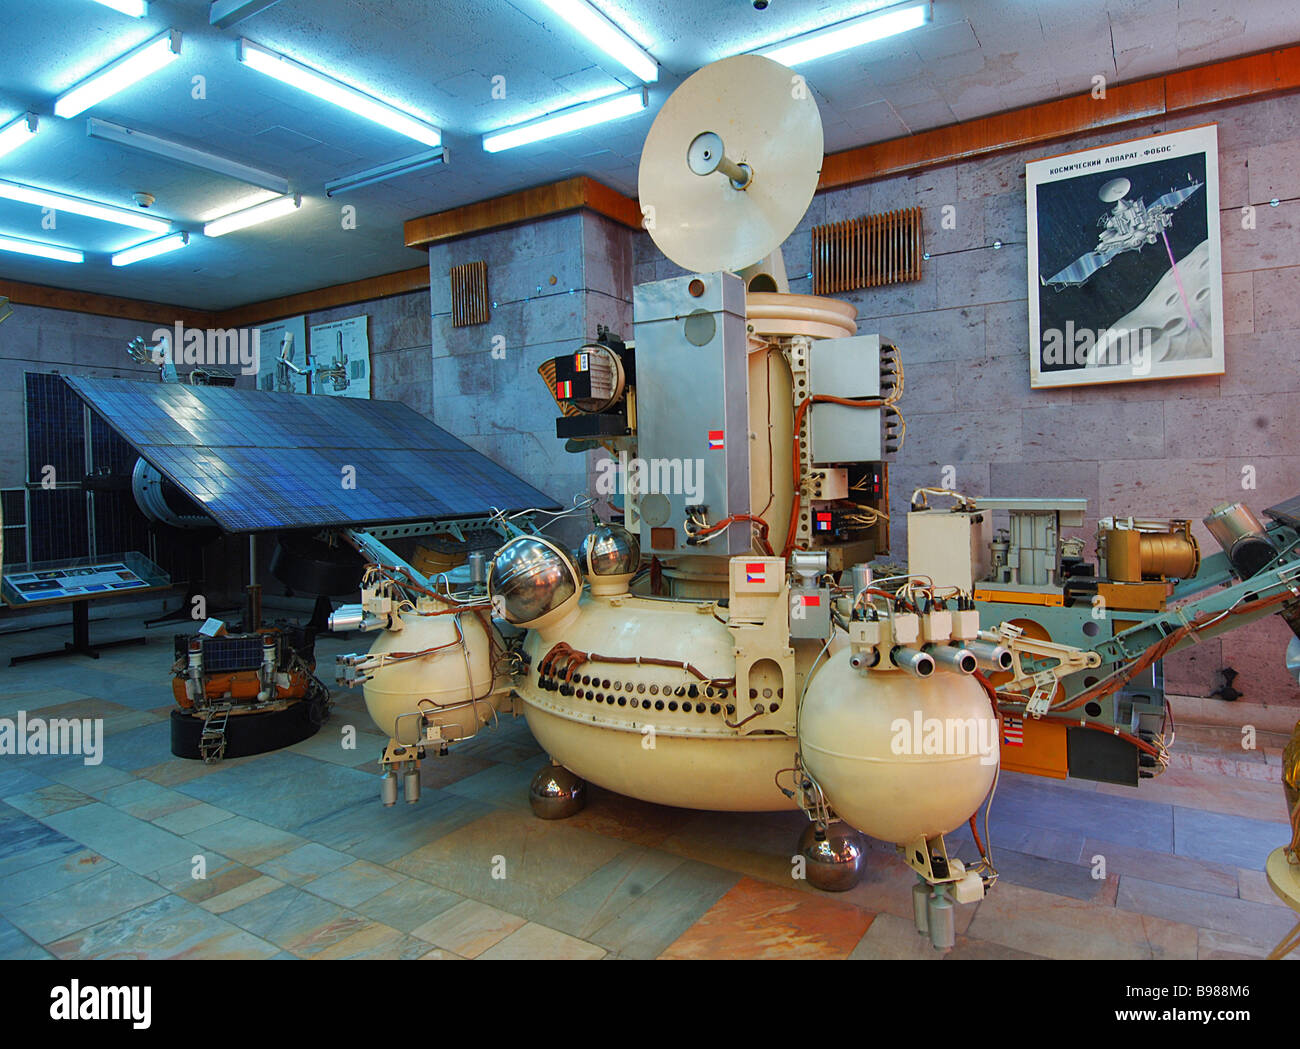 The Fobos interplanetary station was used to explore the Martian surface - Stock Image